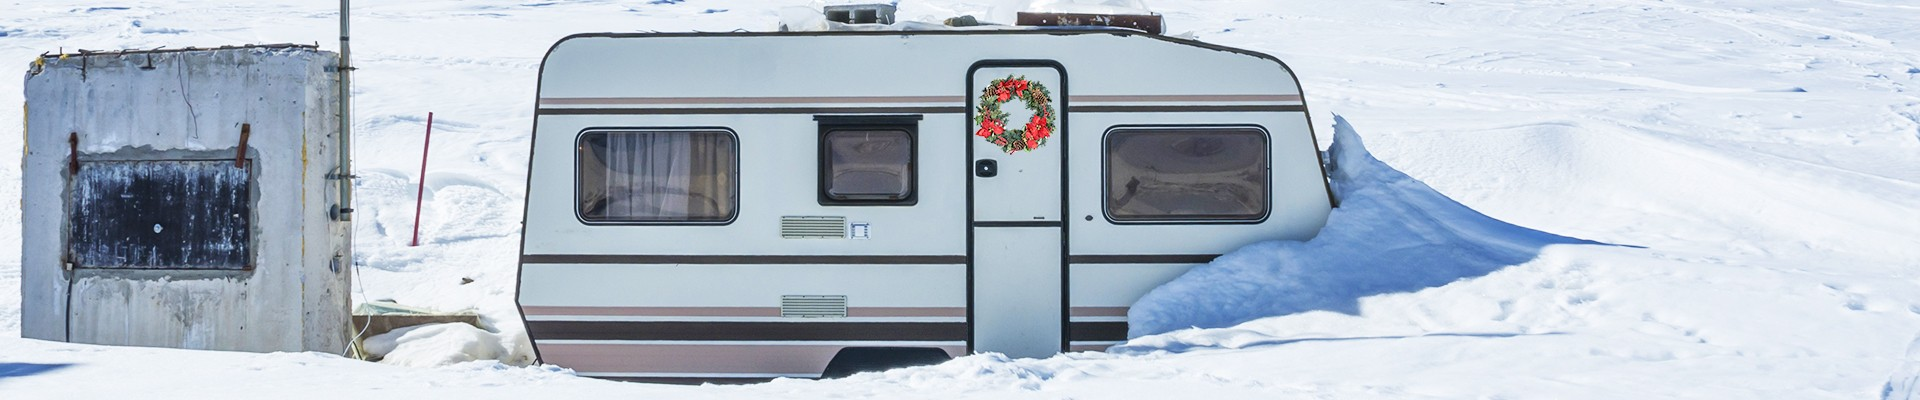 decorate the windows - Rv Christmas Decorations